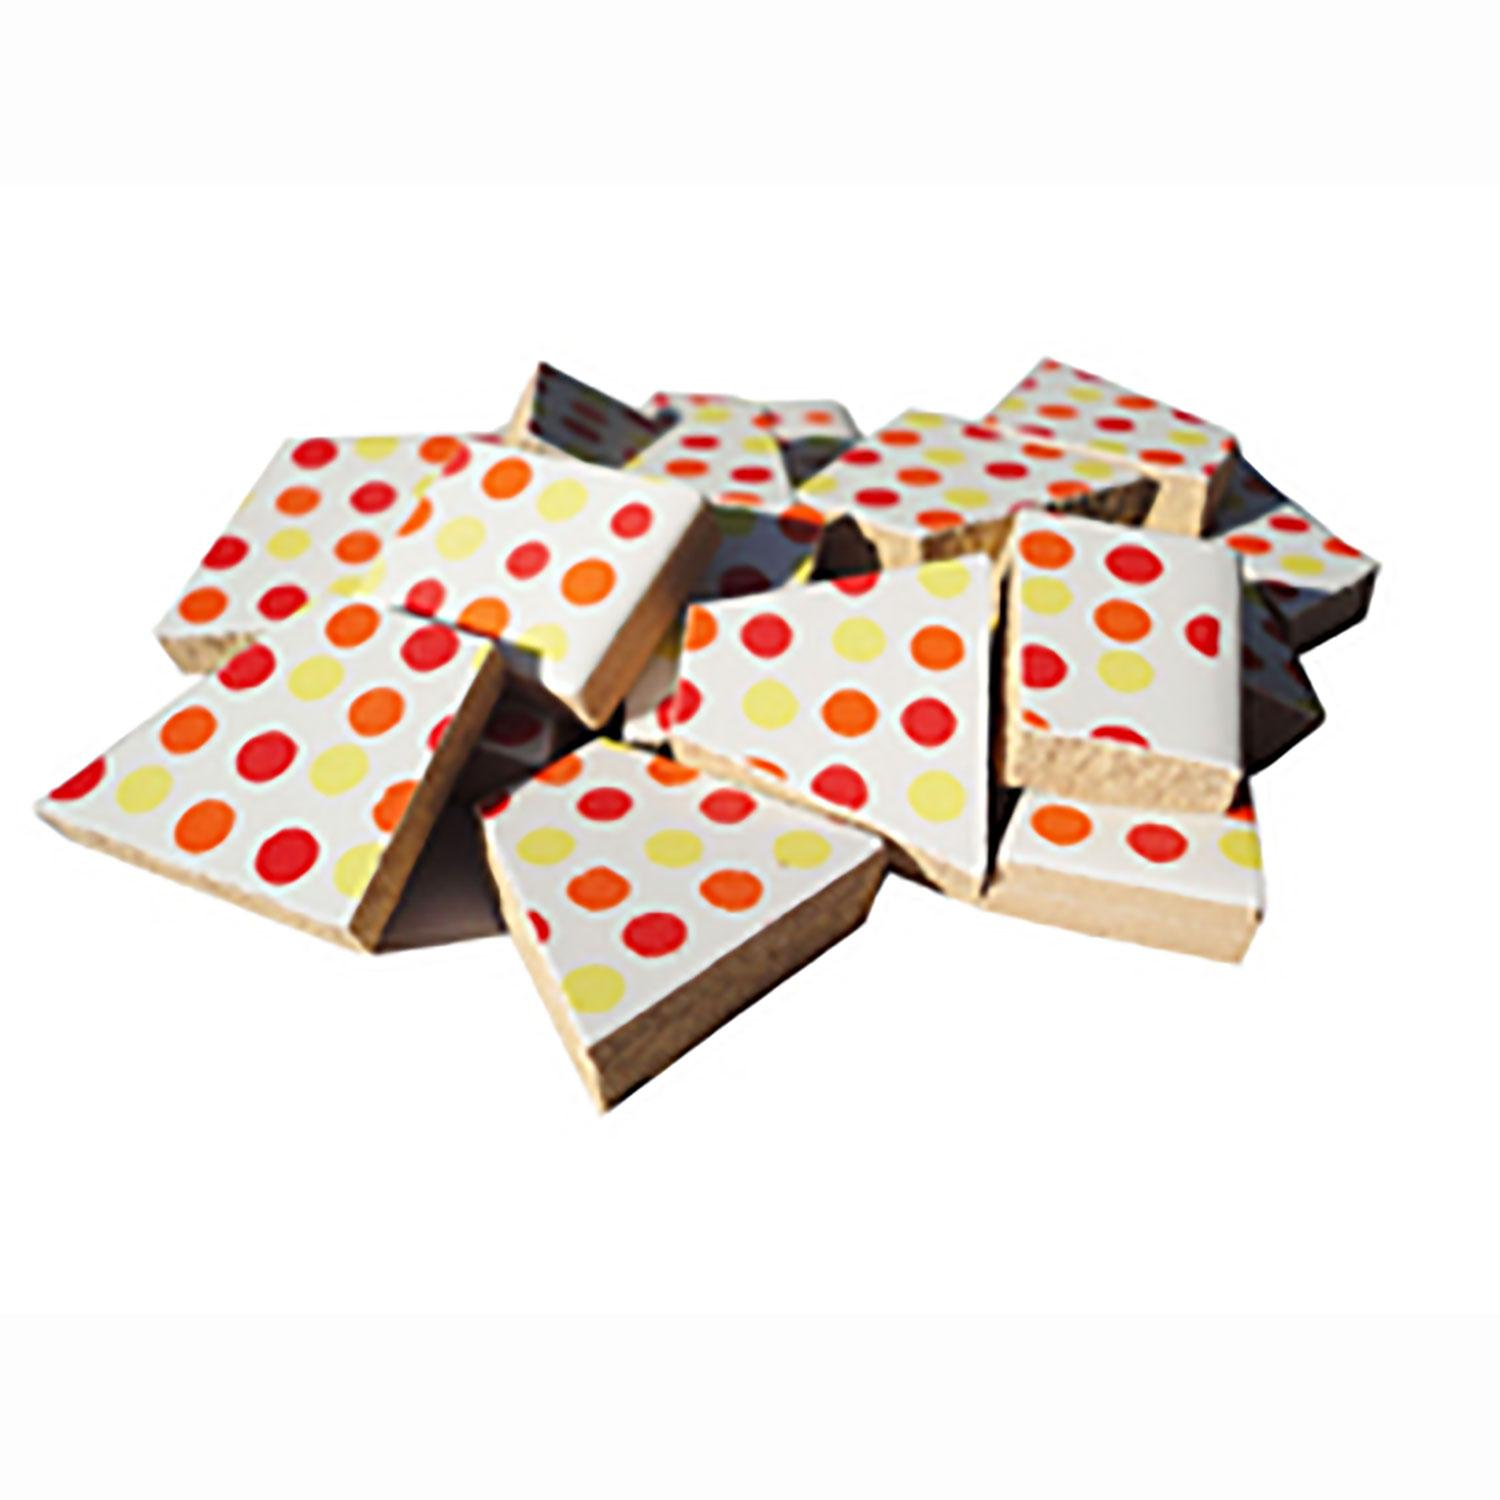 Red and Yellow Dots Ceramic Tile - 1 Lb